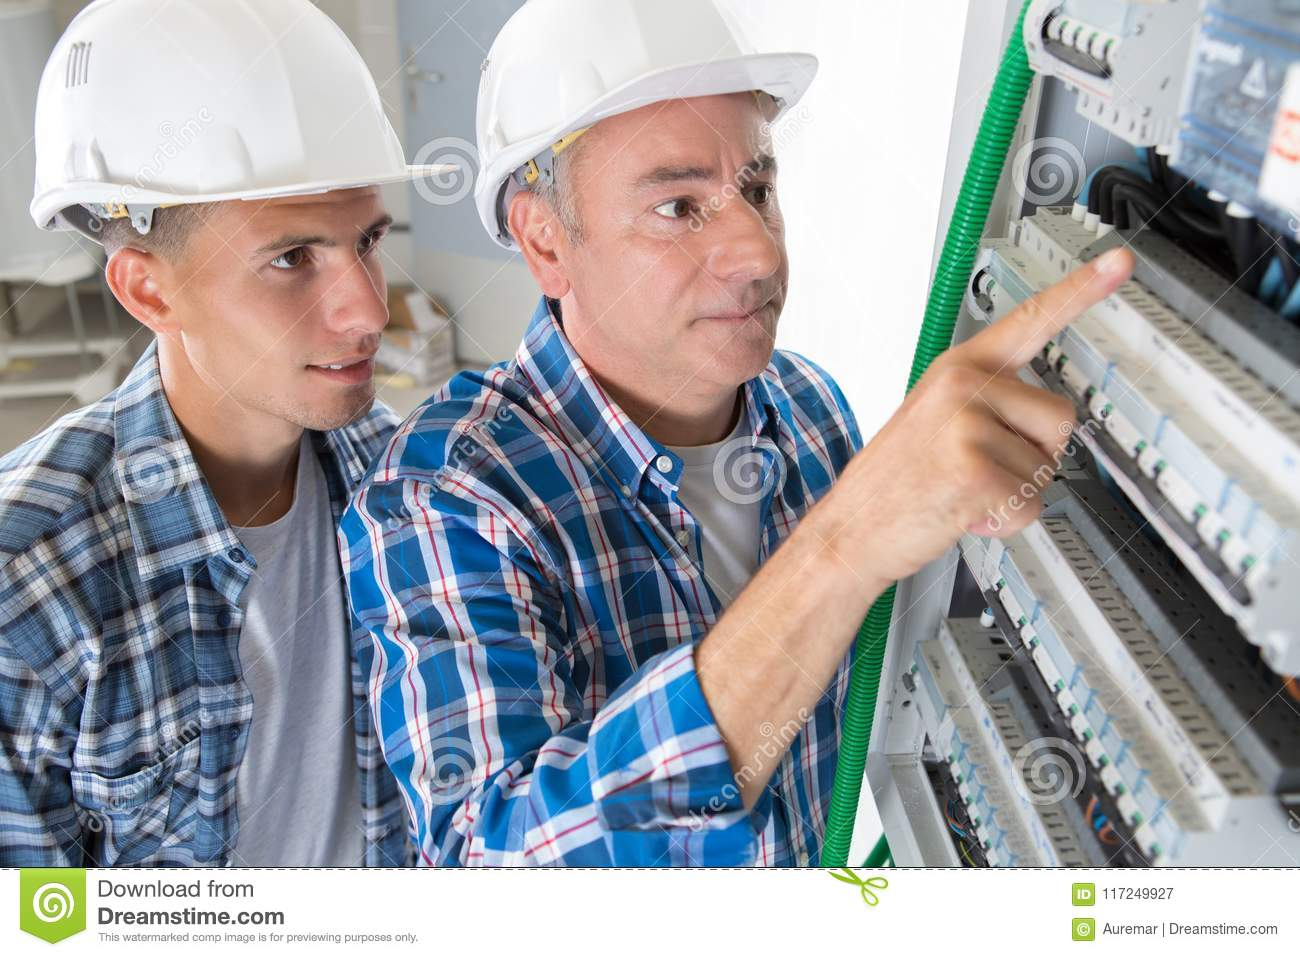 Young male technician learning to examine fusebox with multimeter probe